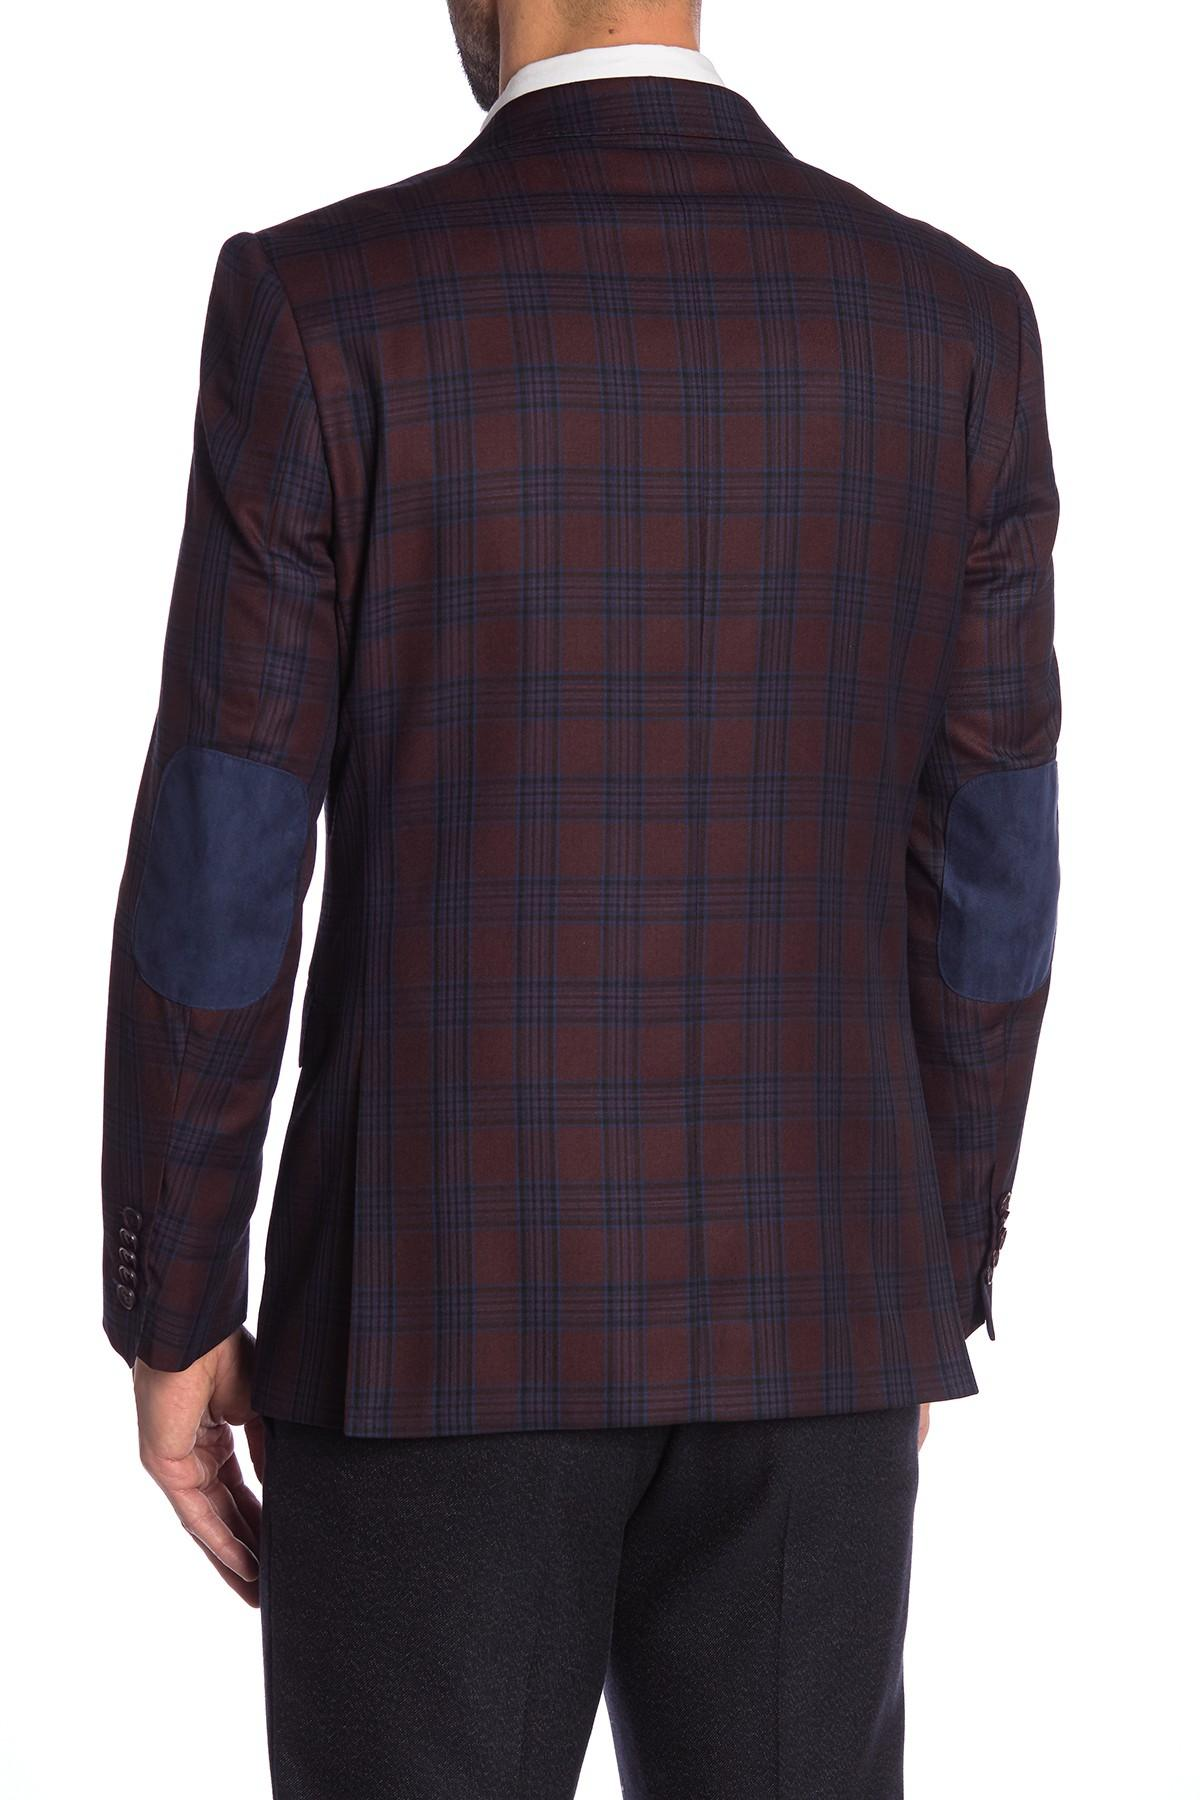 Lyst English Laundry Burgundy Blue Plaid Two Button